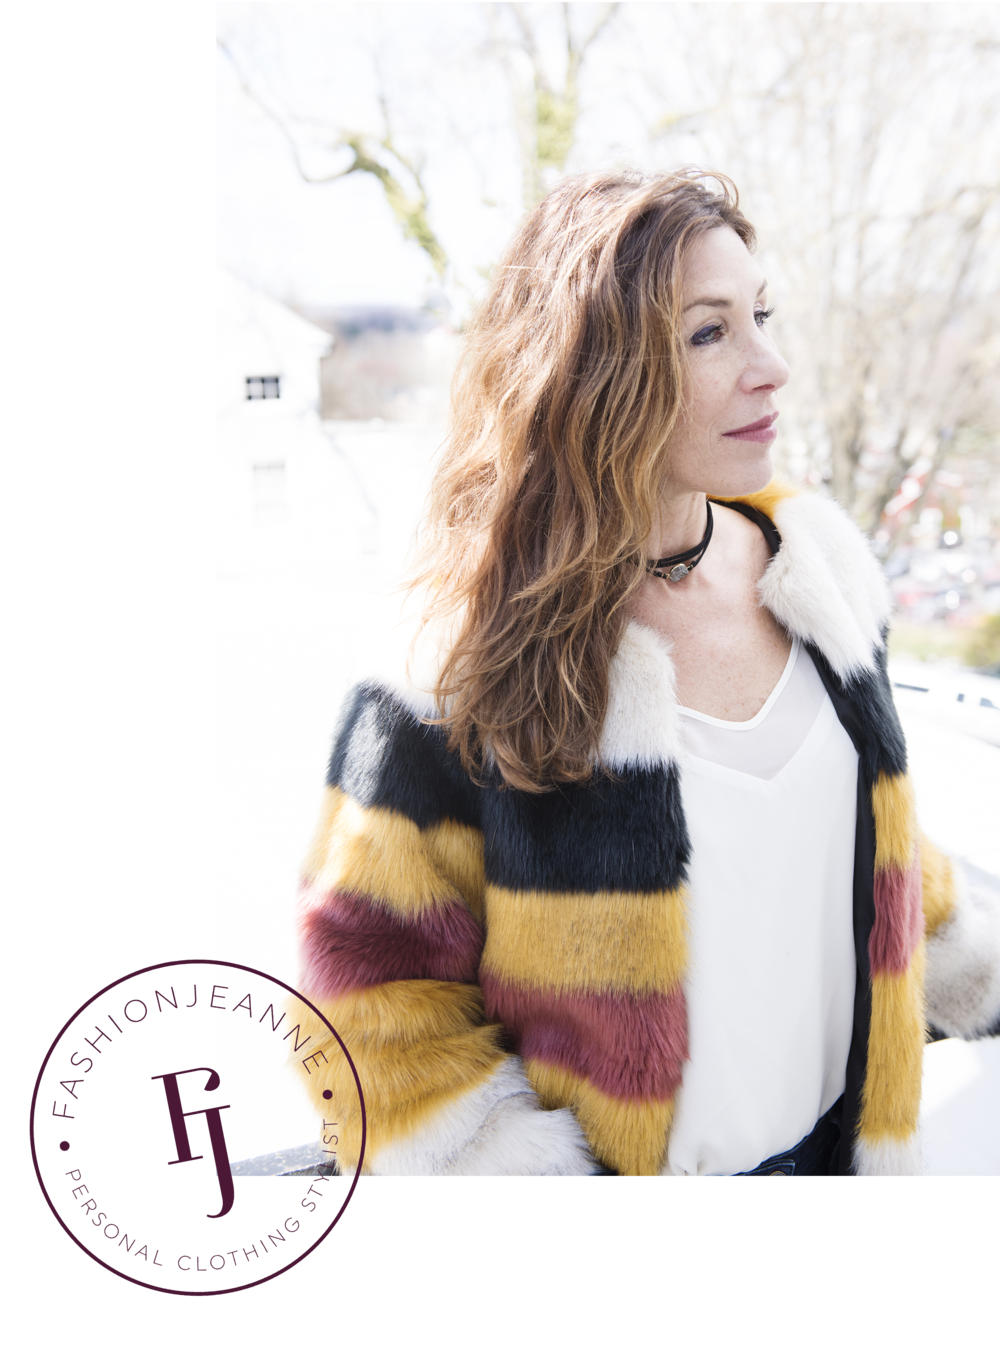 Jeanne Rihm of FashionJeanne Headshot  |  Personal Clothing Stylist for Women